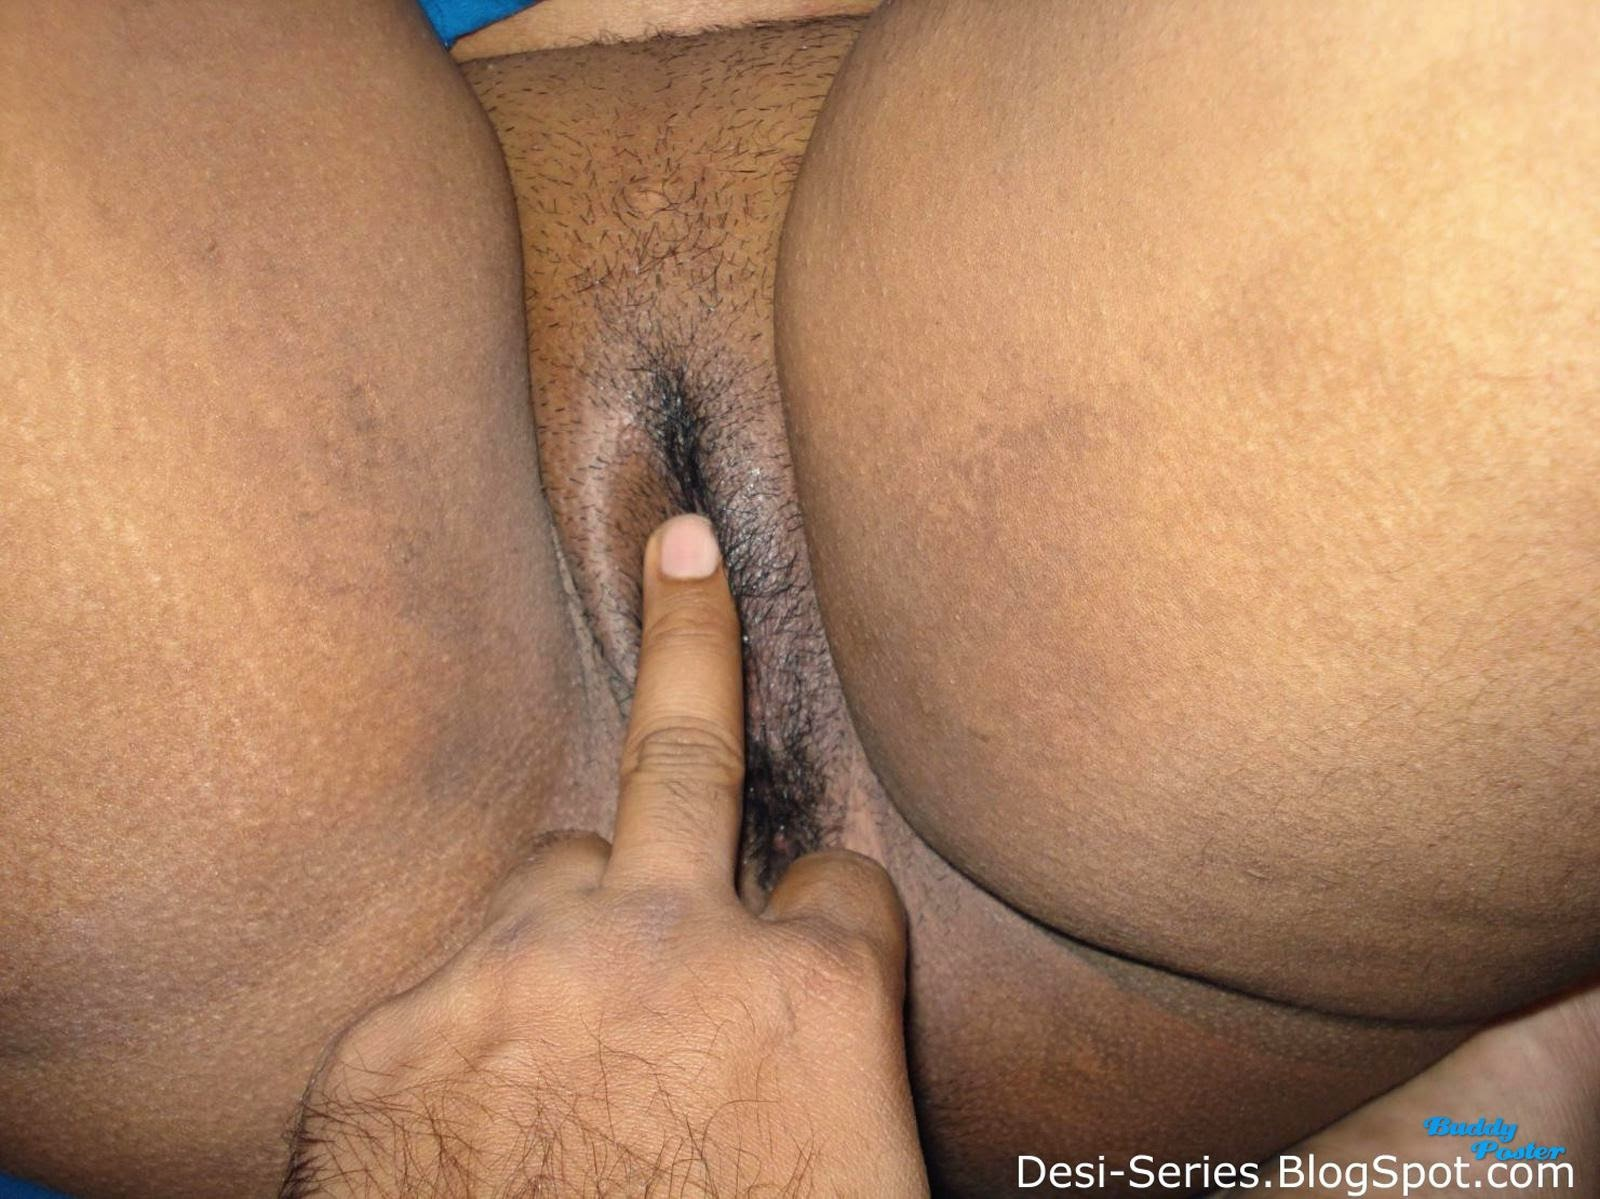 All Indian aunty hairy nice pussy pic commit